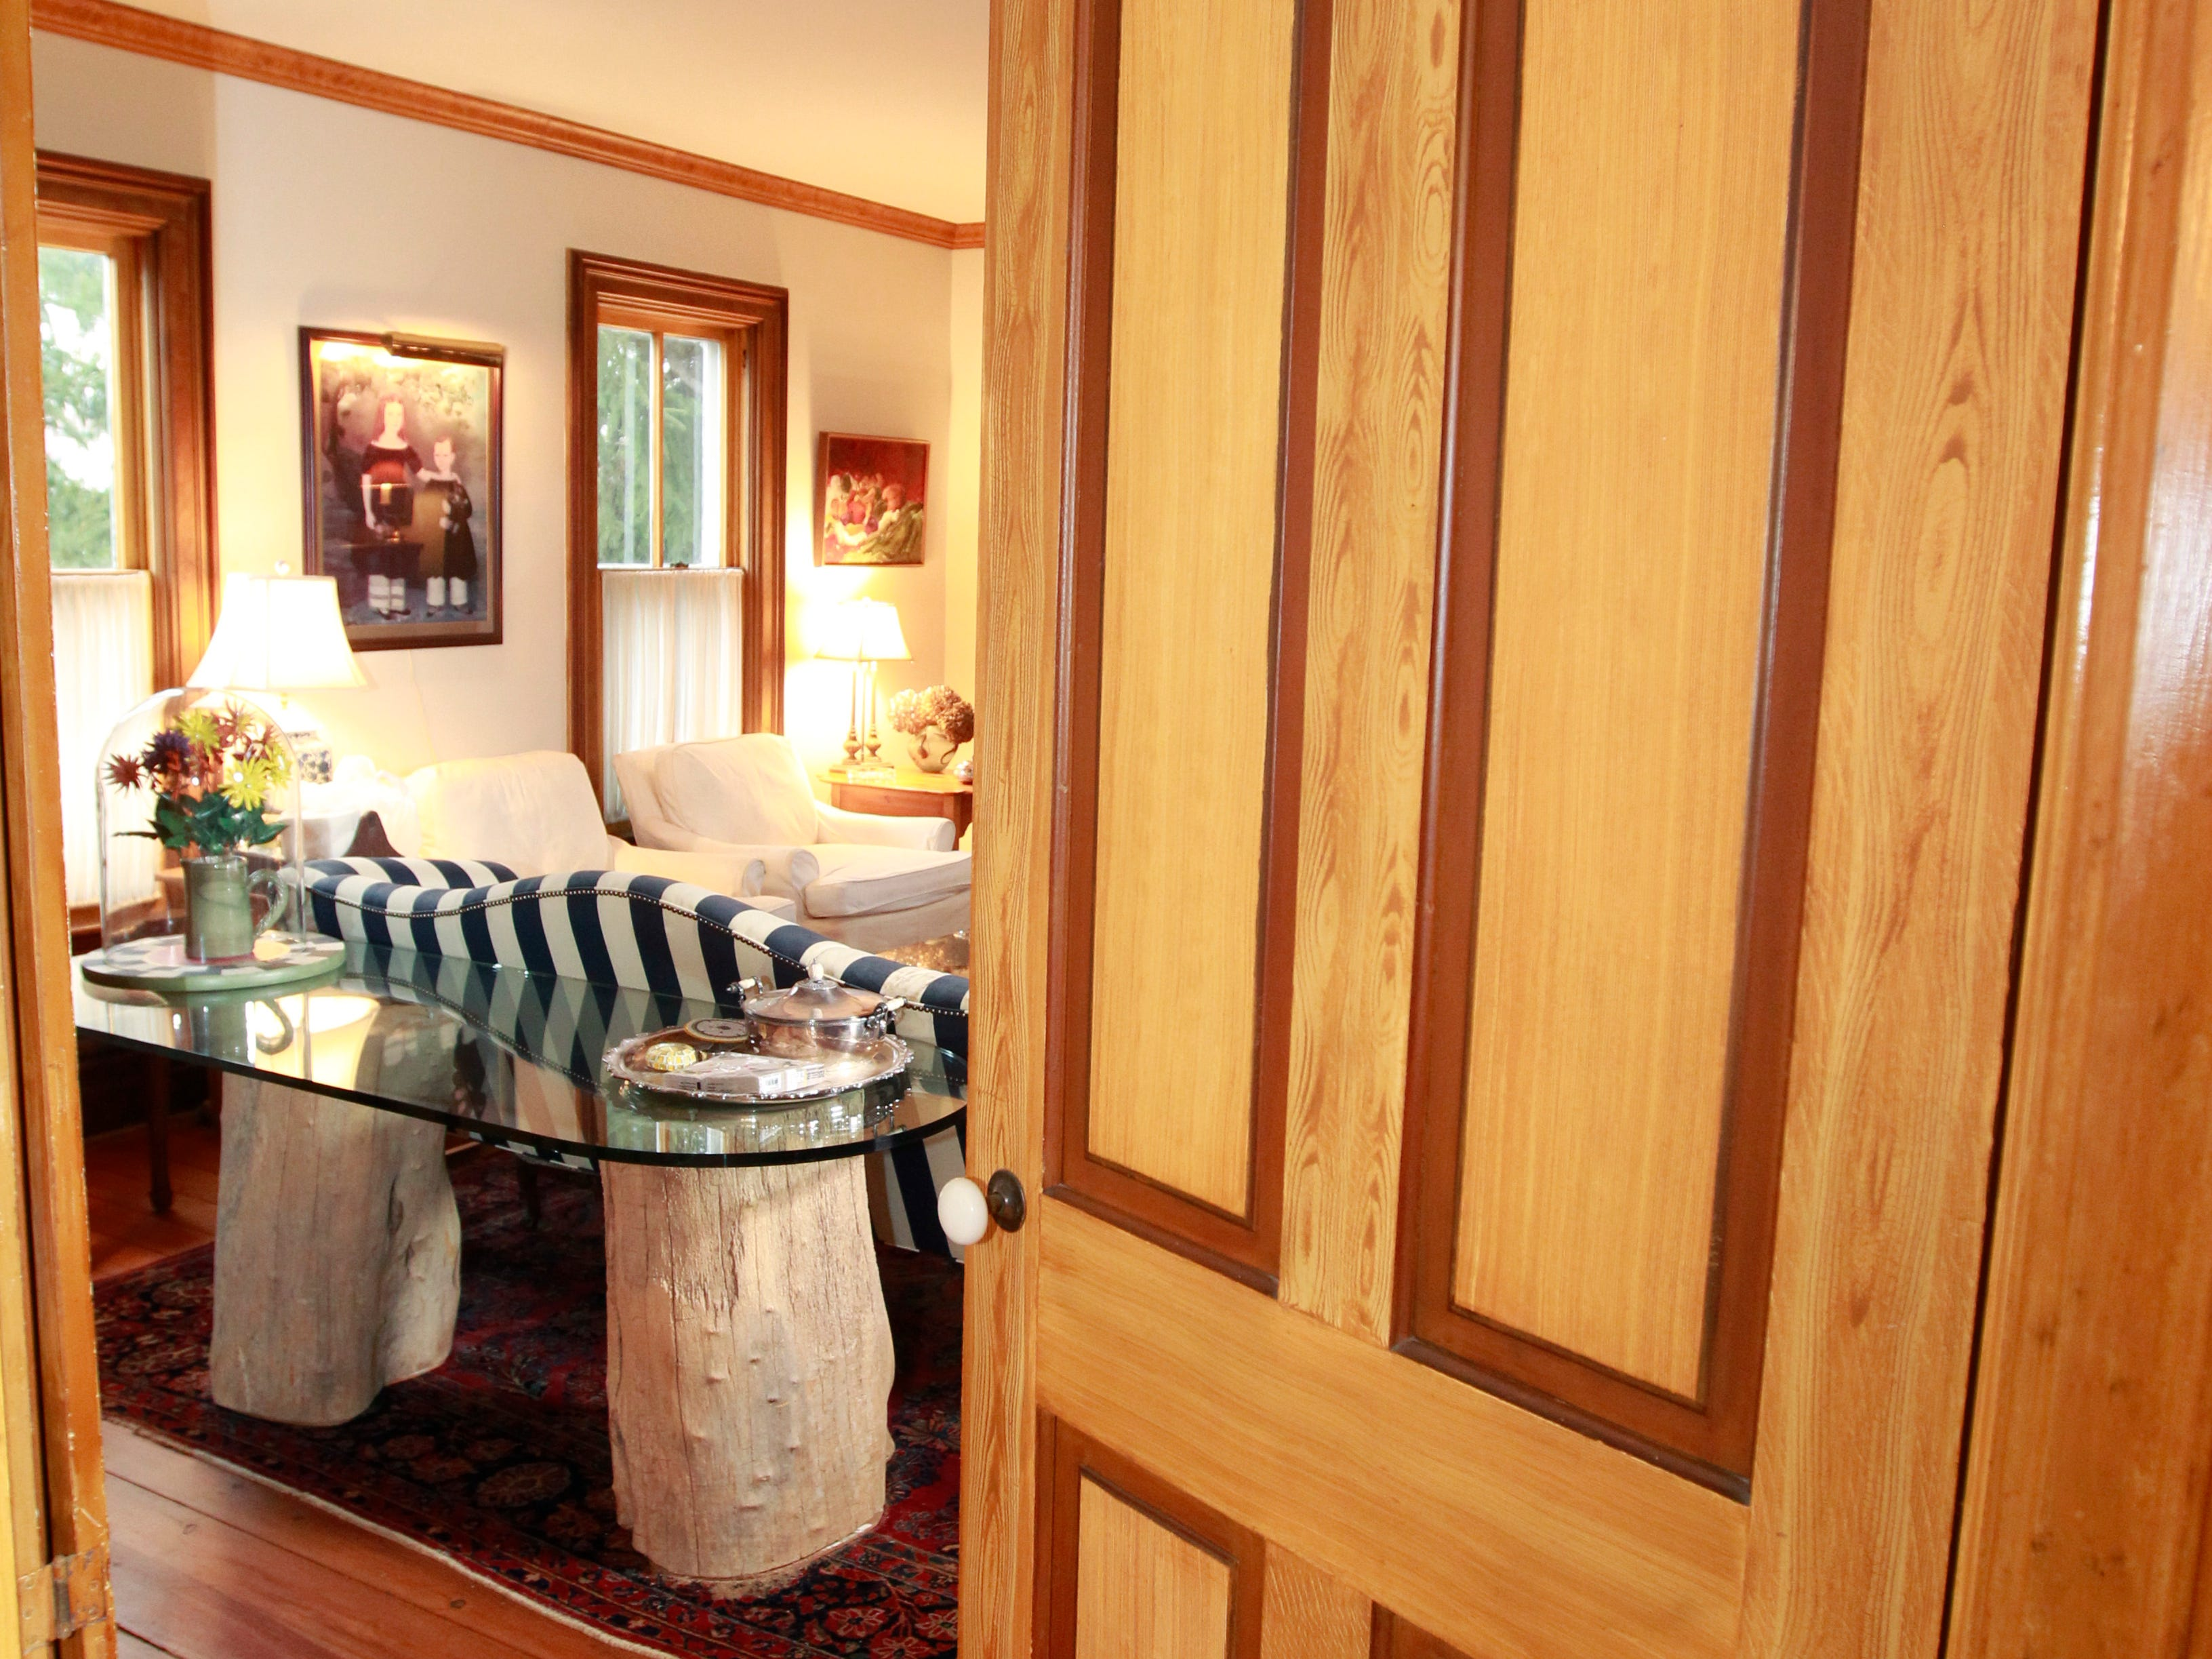 This door leading to the living room is original to this 1881 farmhouse owned by Betty and Lynn Adelman.